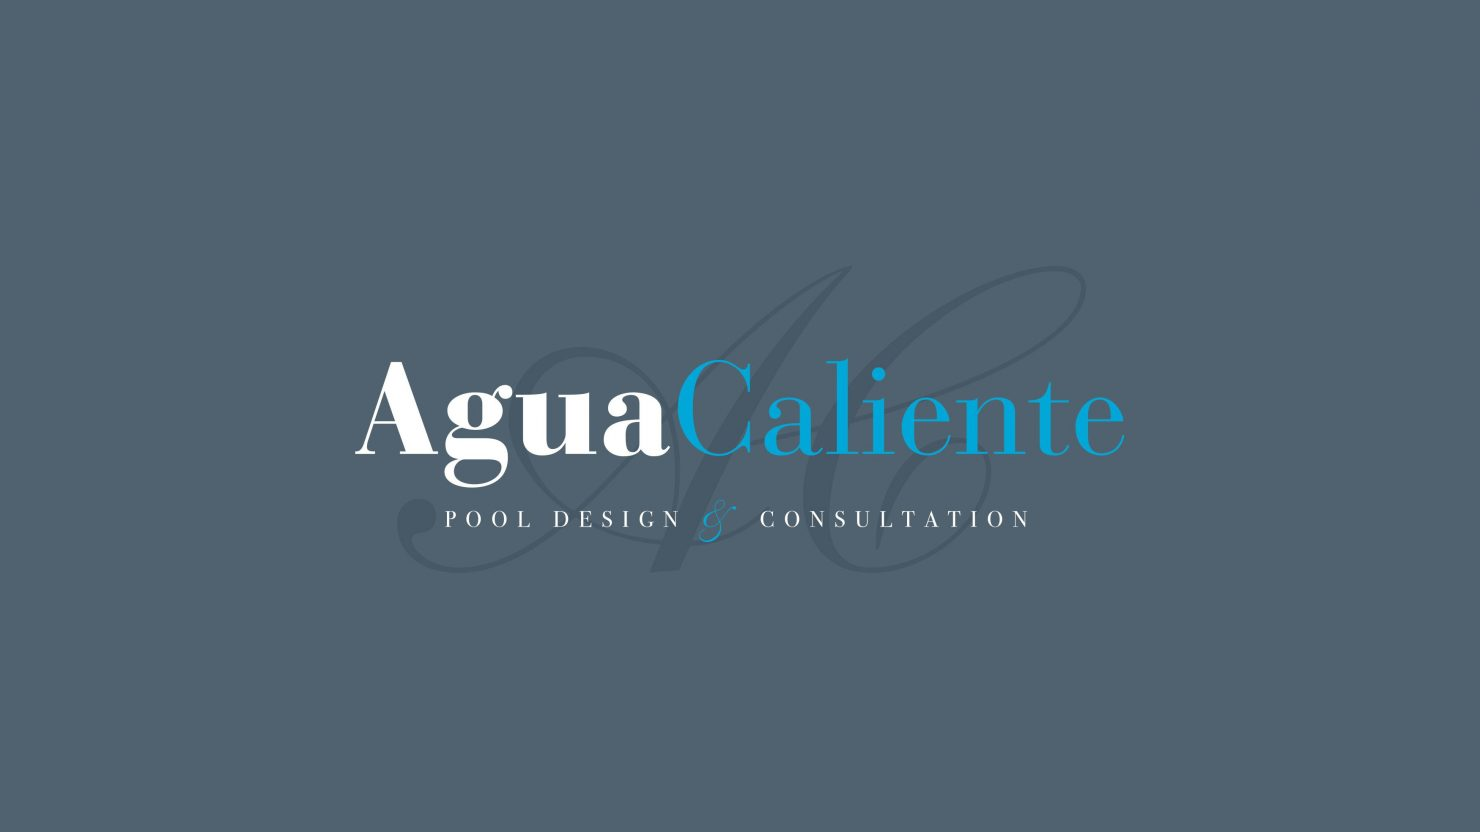 logo design and branding for agua caliente website